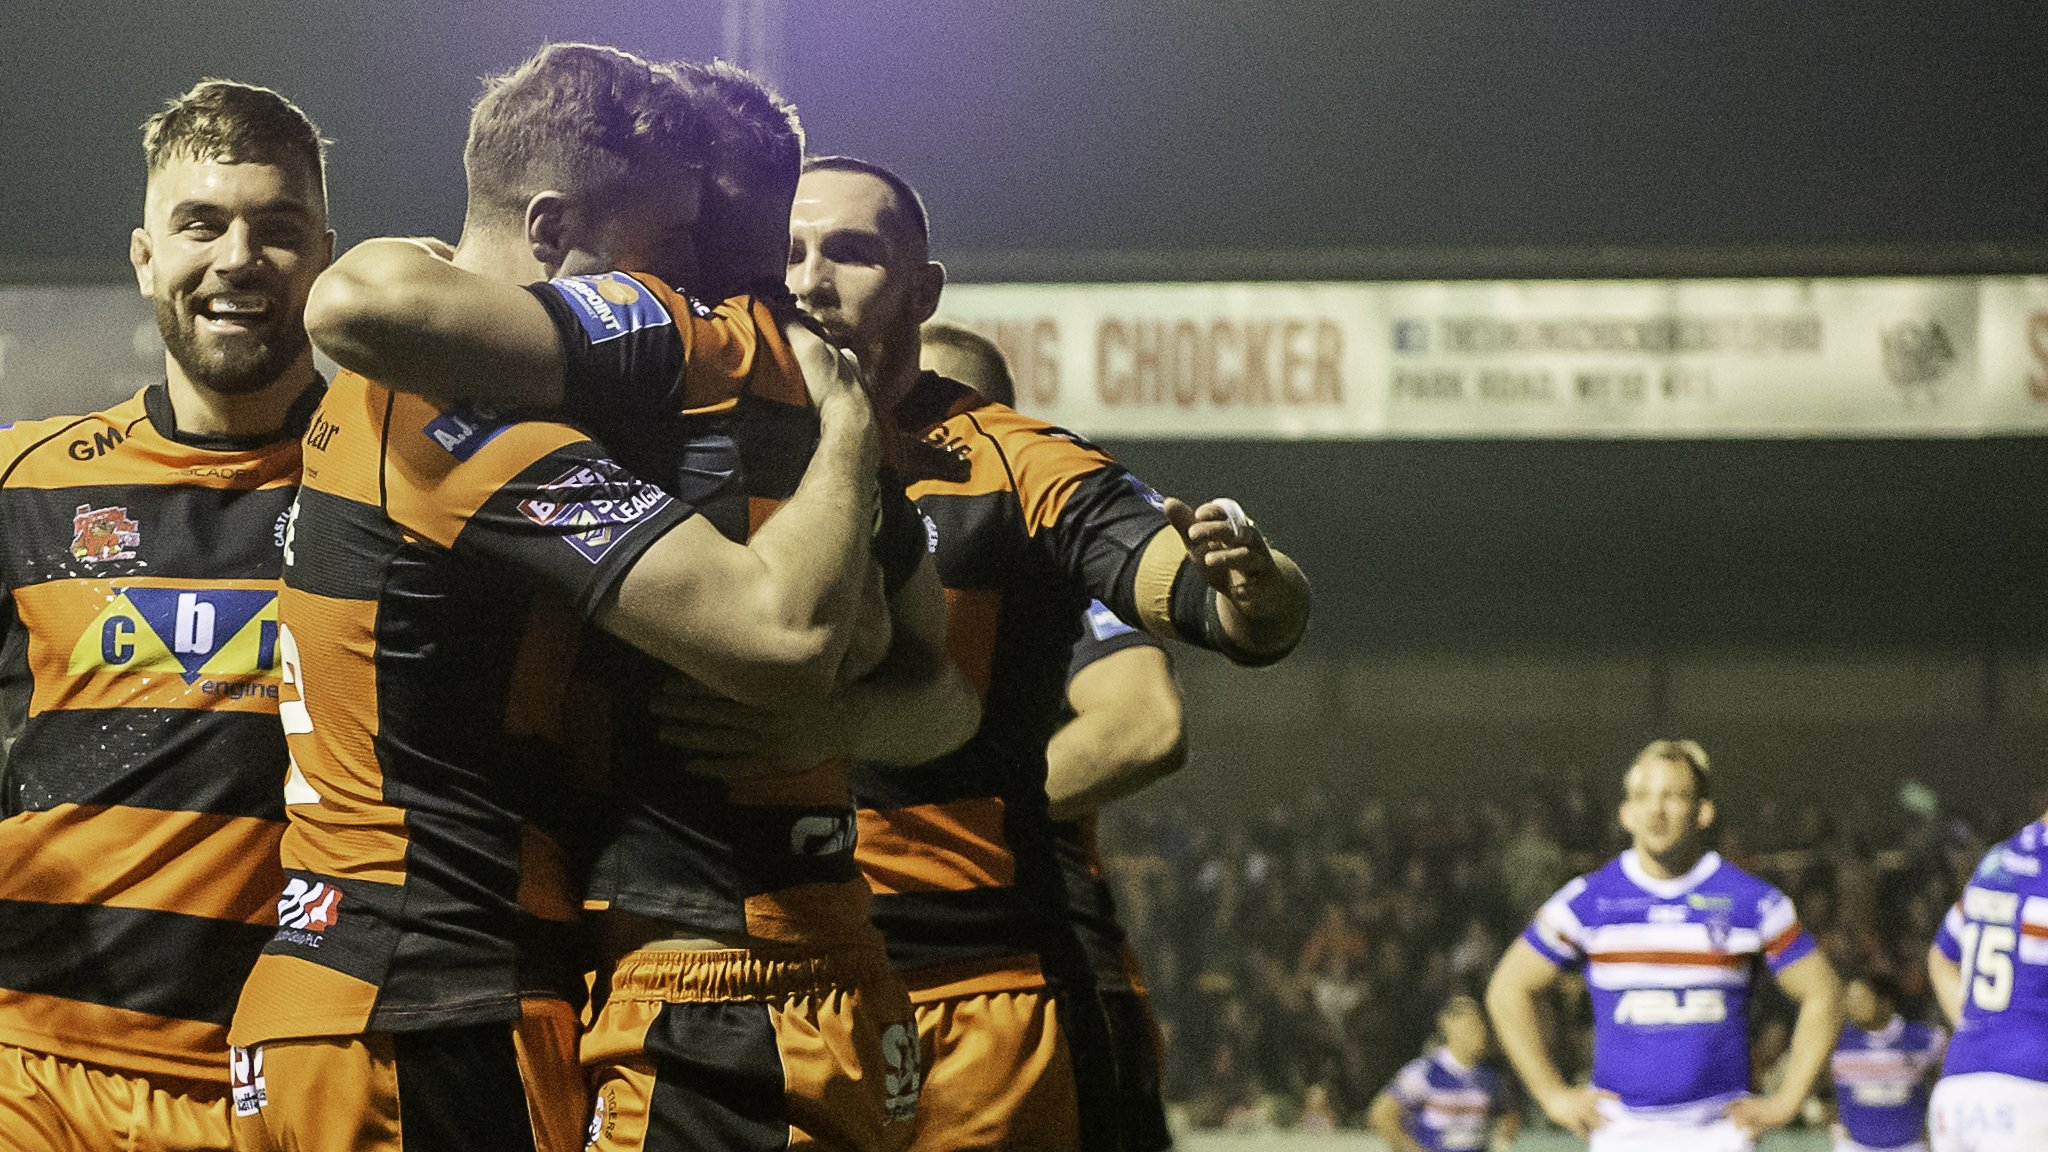 Super League: Castleford Tigers 28-16 Wakefield Trinity